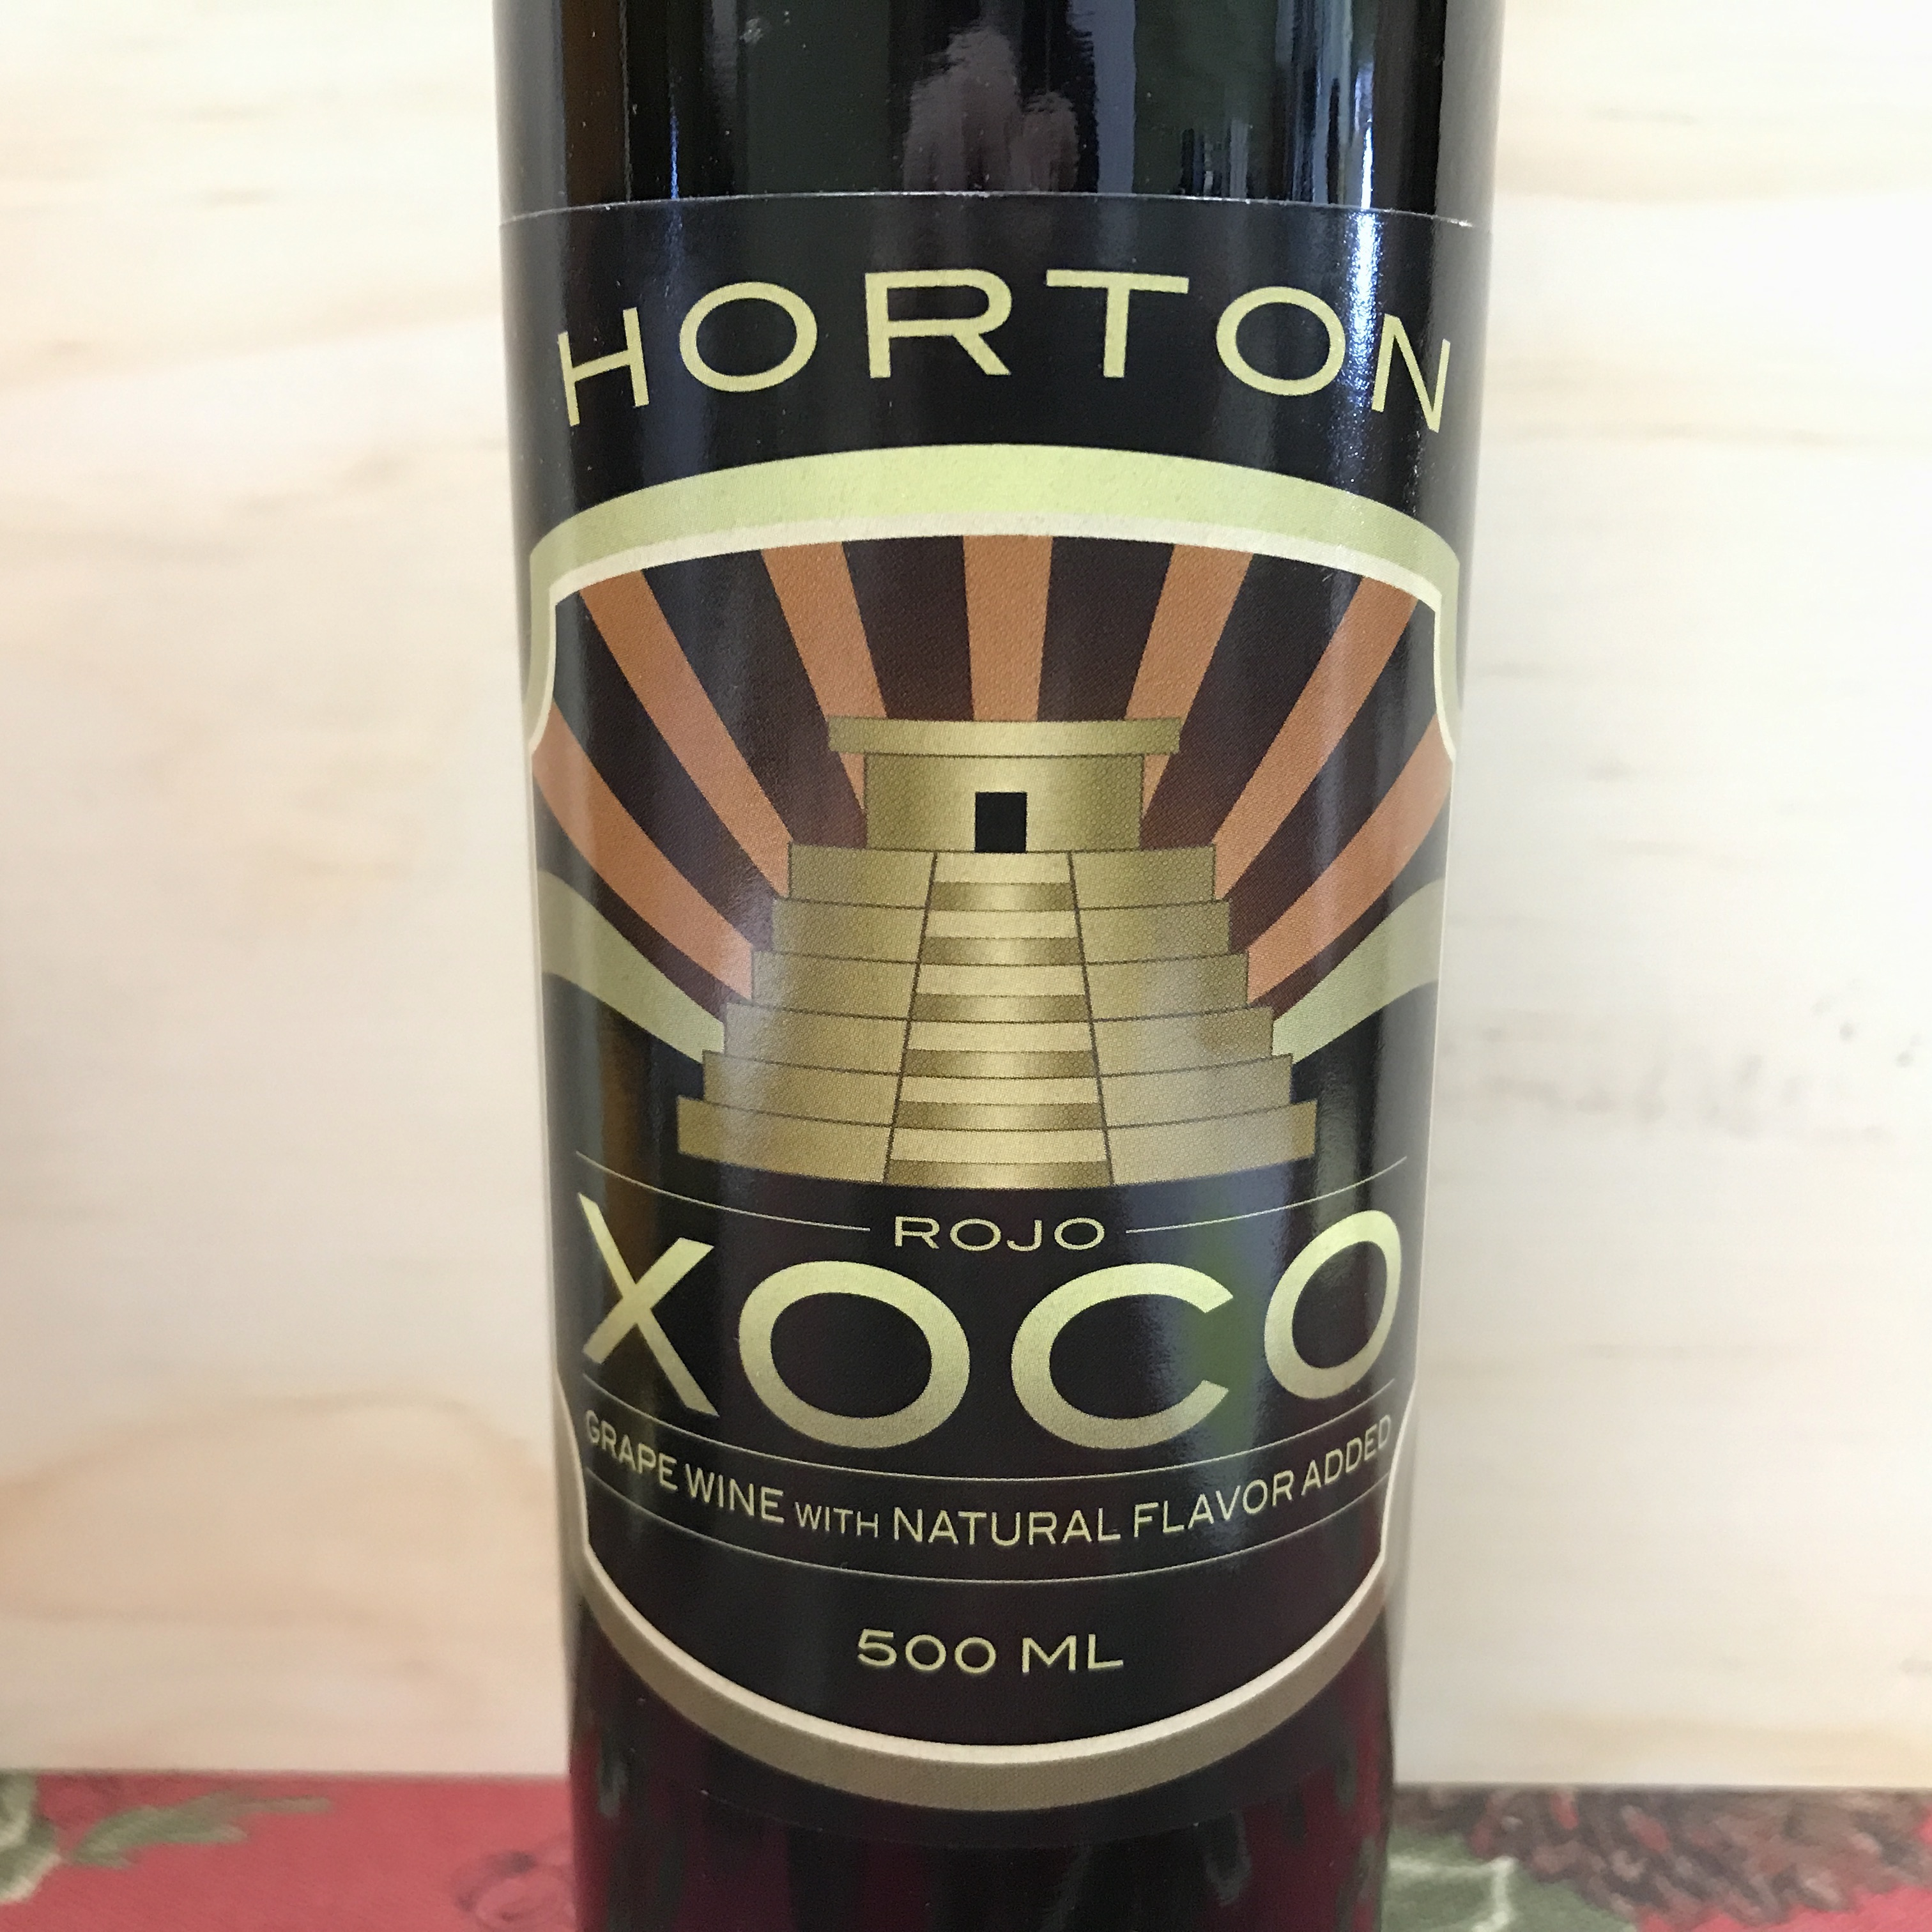 Horton Vineyards Xoco Rojo desert red